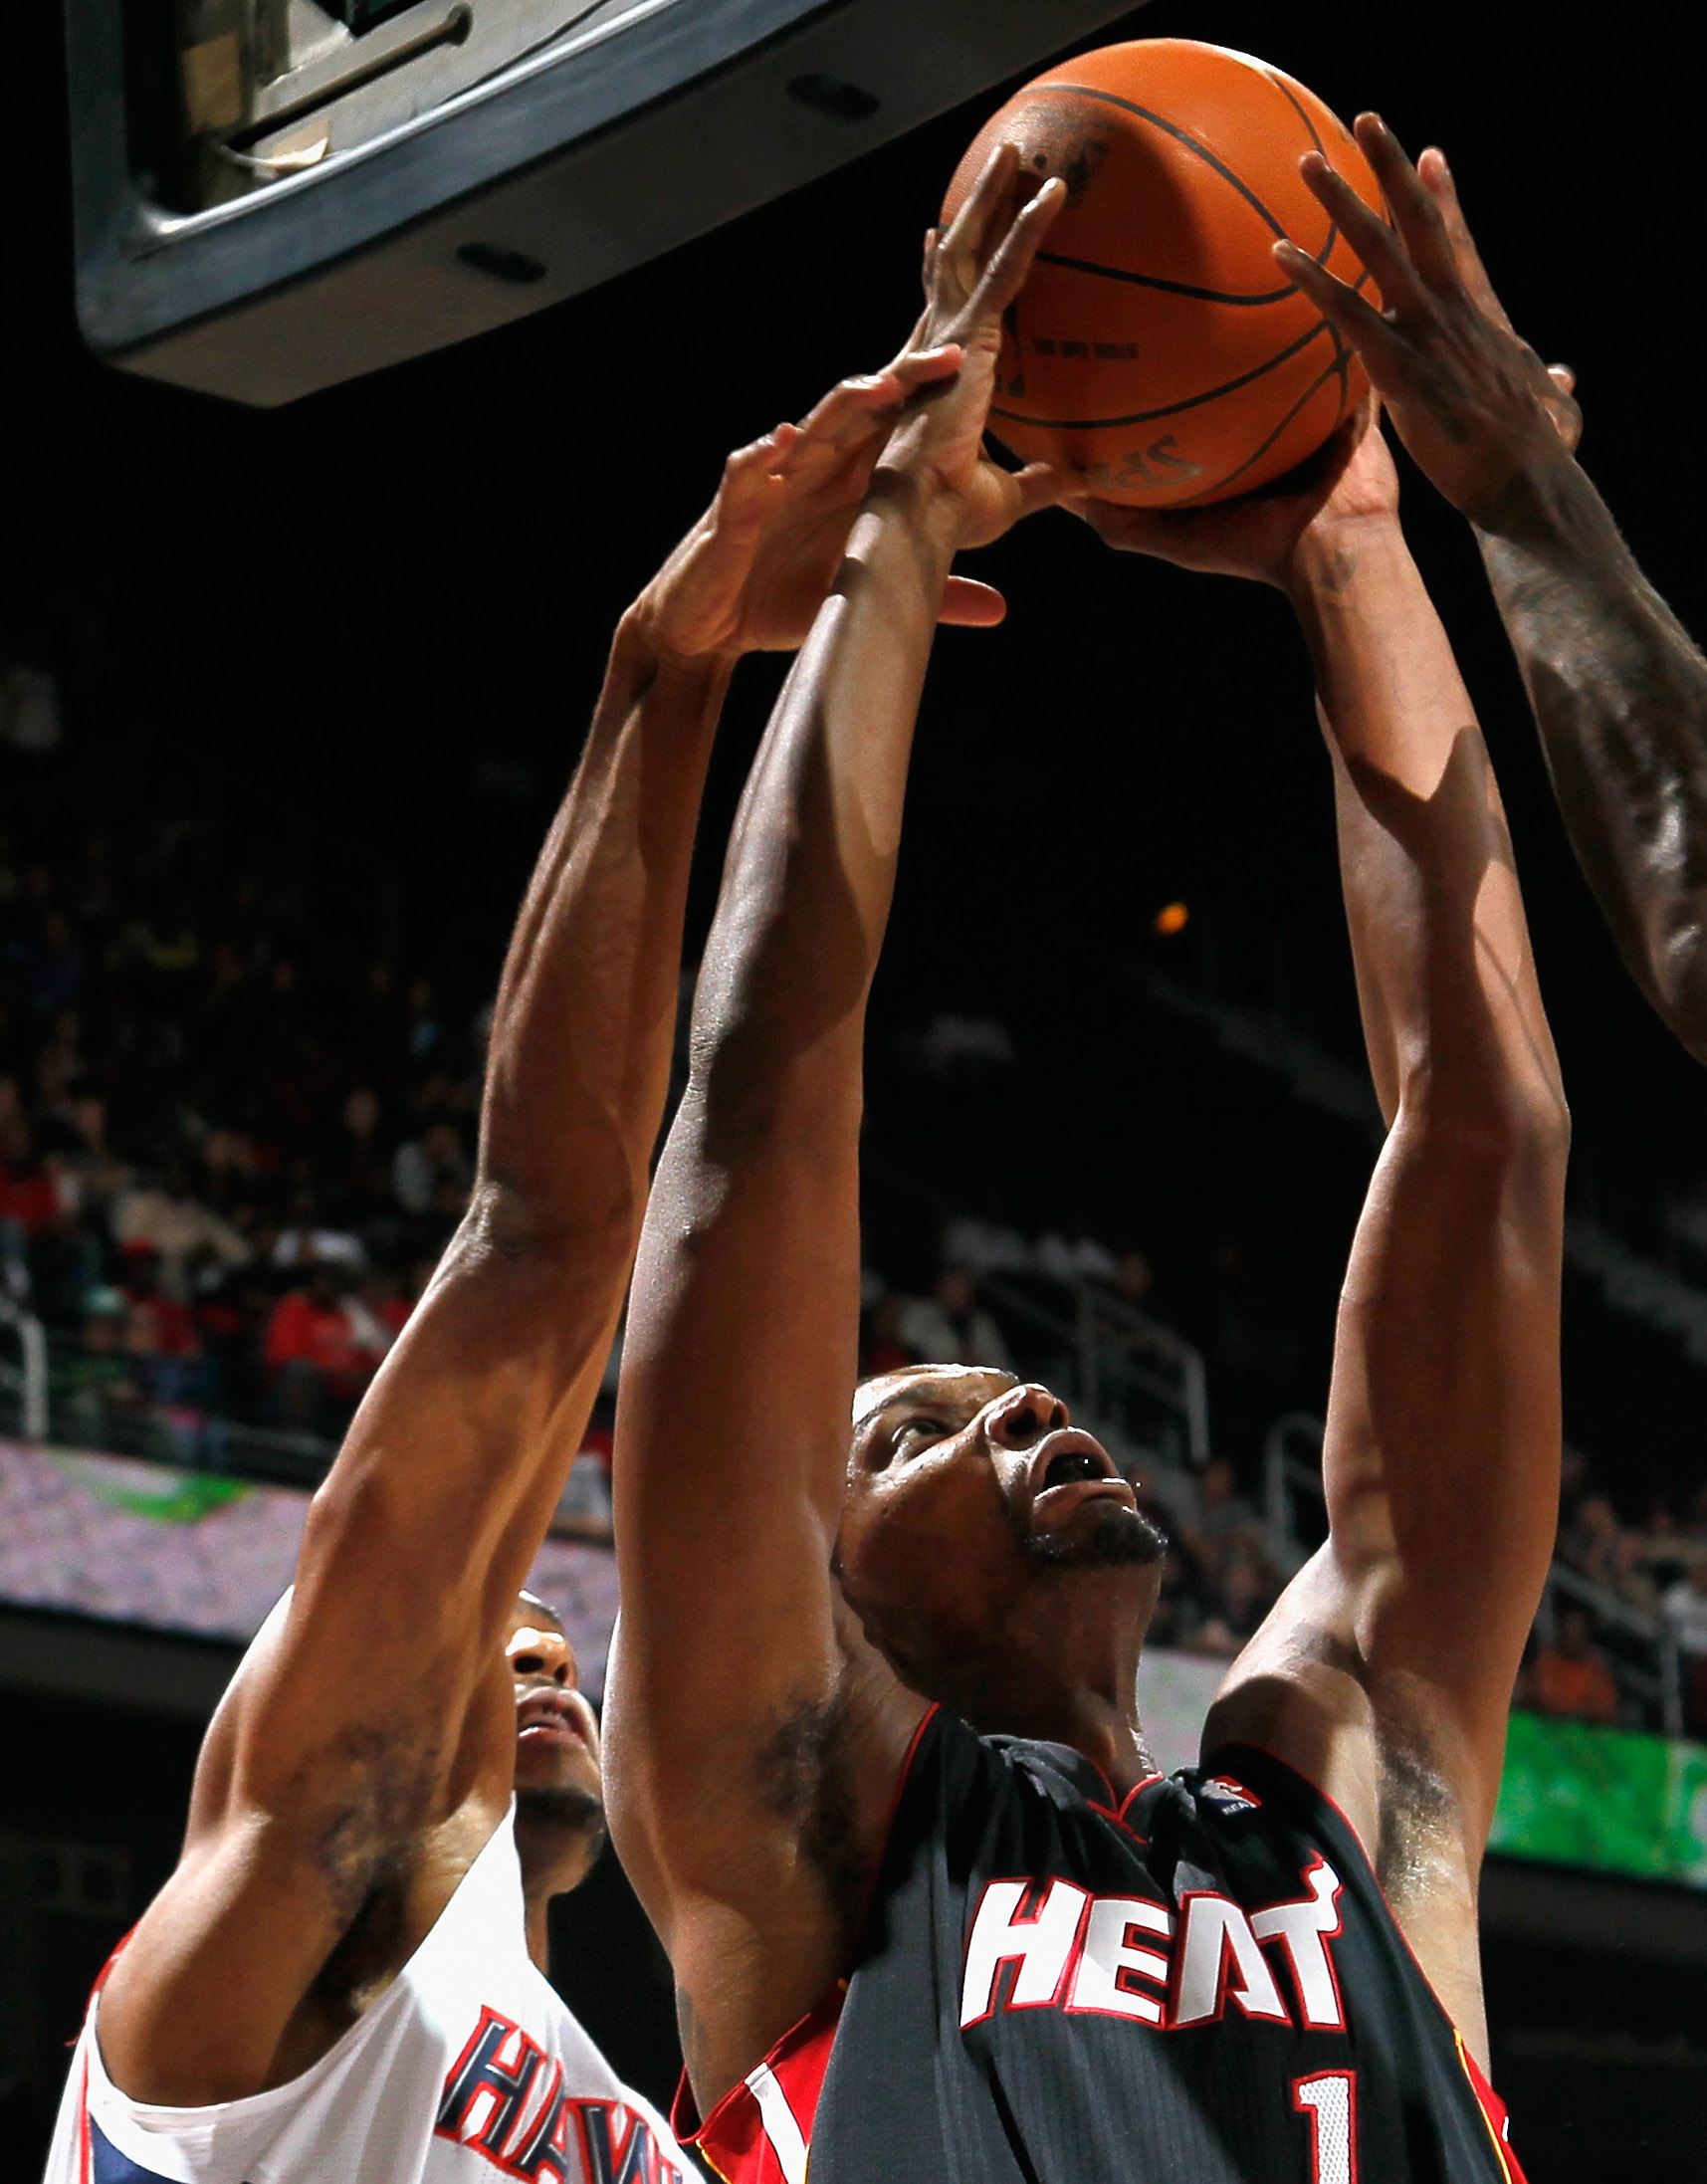 ATLANTA - OCTOBER 21:  Chris Bosh #1 of the Miami Heat attacks the basket against Al Horford #15 of the Atlanta Hawks at Philips Arena on October 21, 2010 in Atlanta, Georgia.  (Photo by Kevin C. Cox/Getty Images)